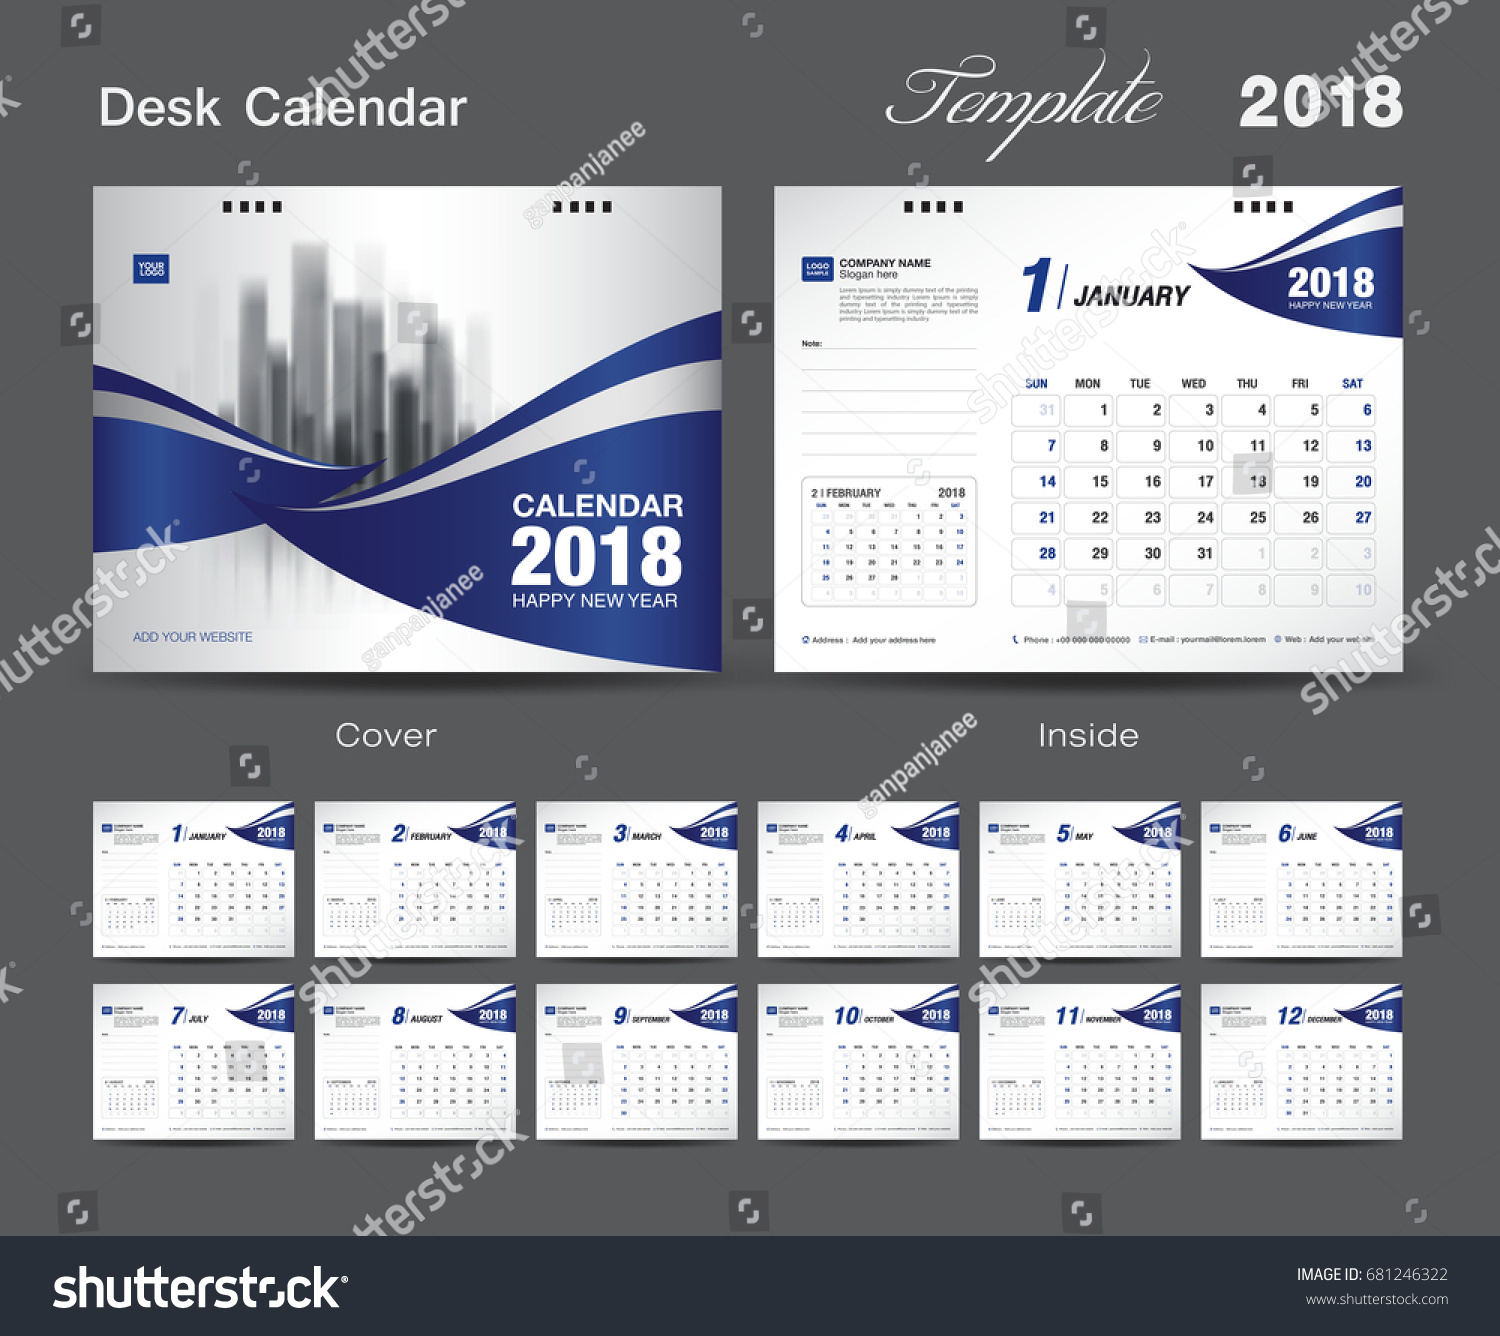 Calendar Cover Page Design : Set desk calendar template design stock vector